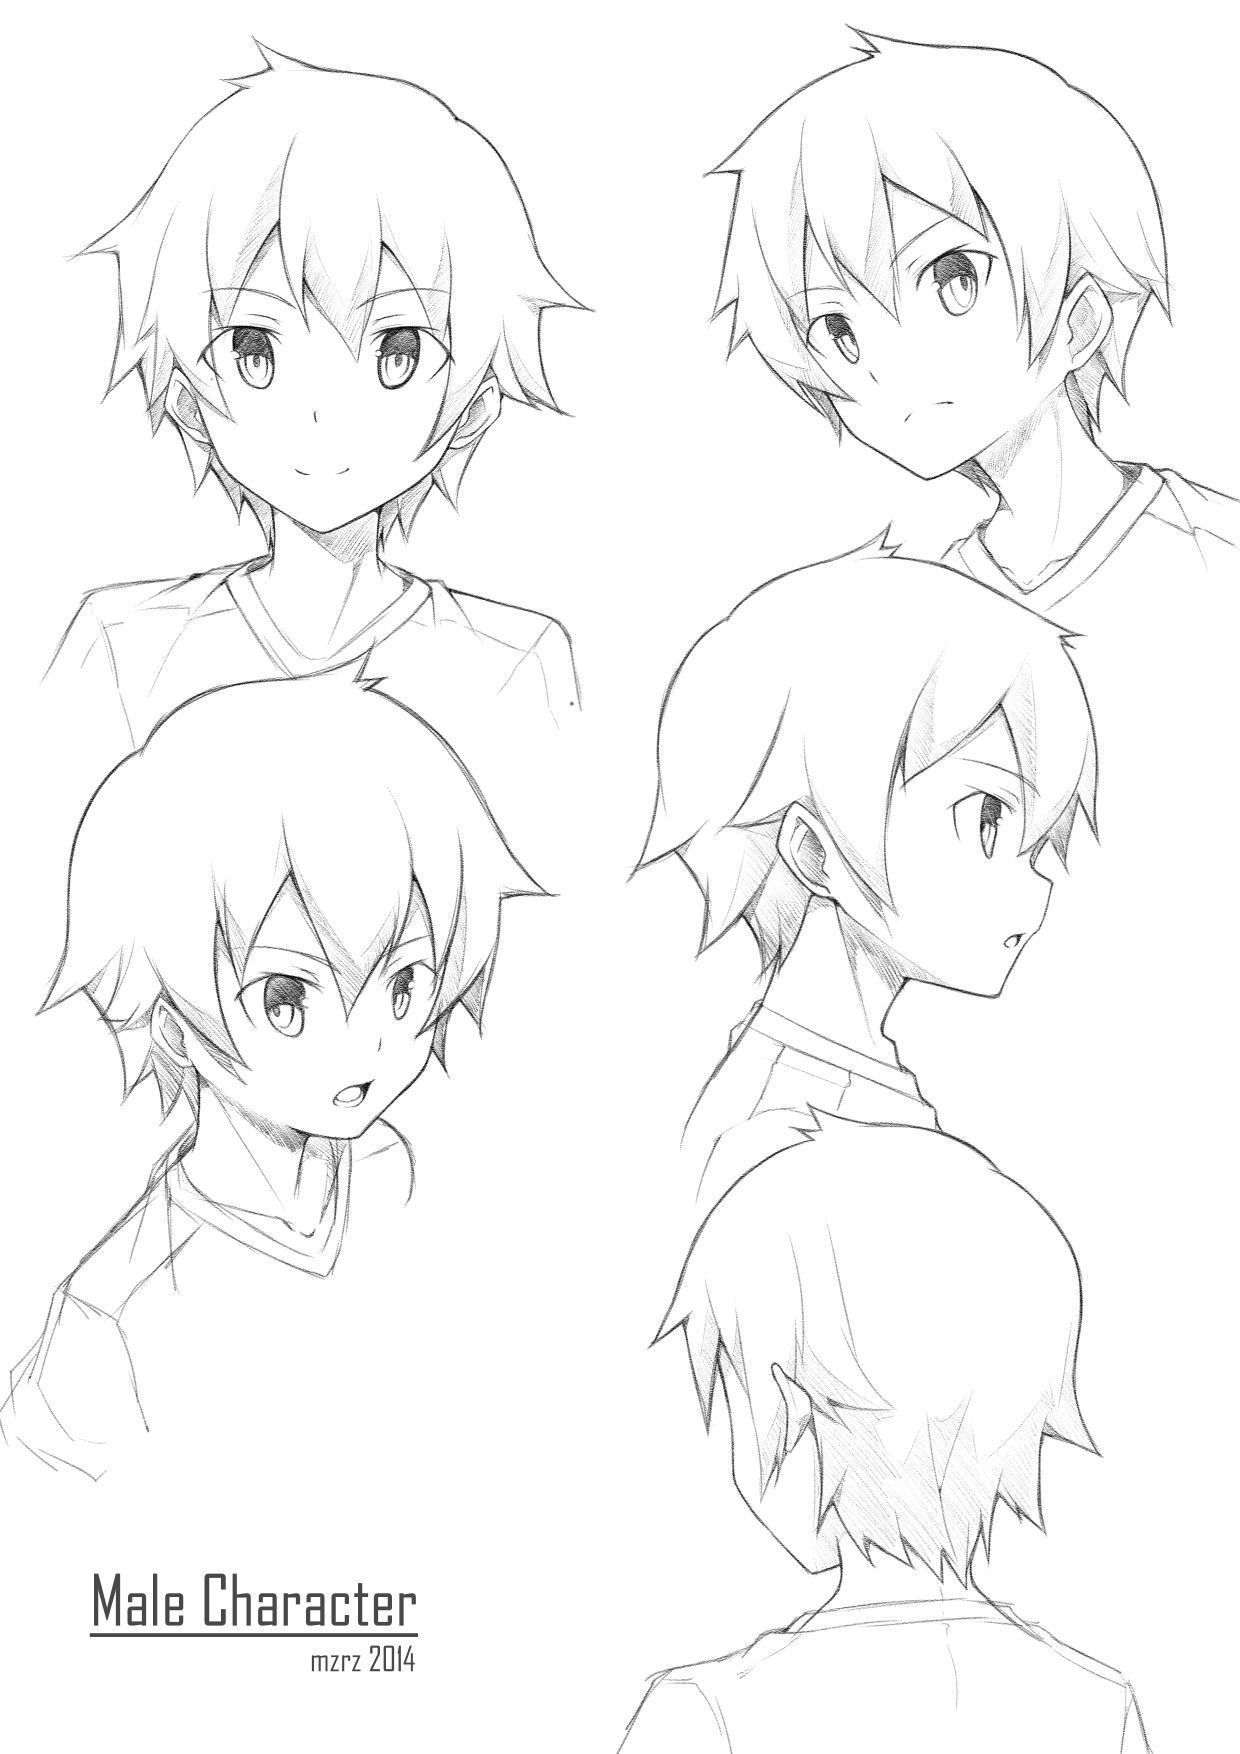 Drawing Hair Techniques In 2020 Manga Drawing Anime Drawings Anime Lineart